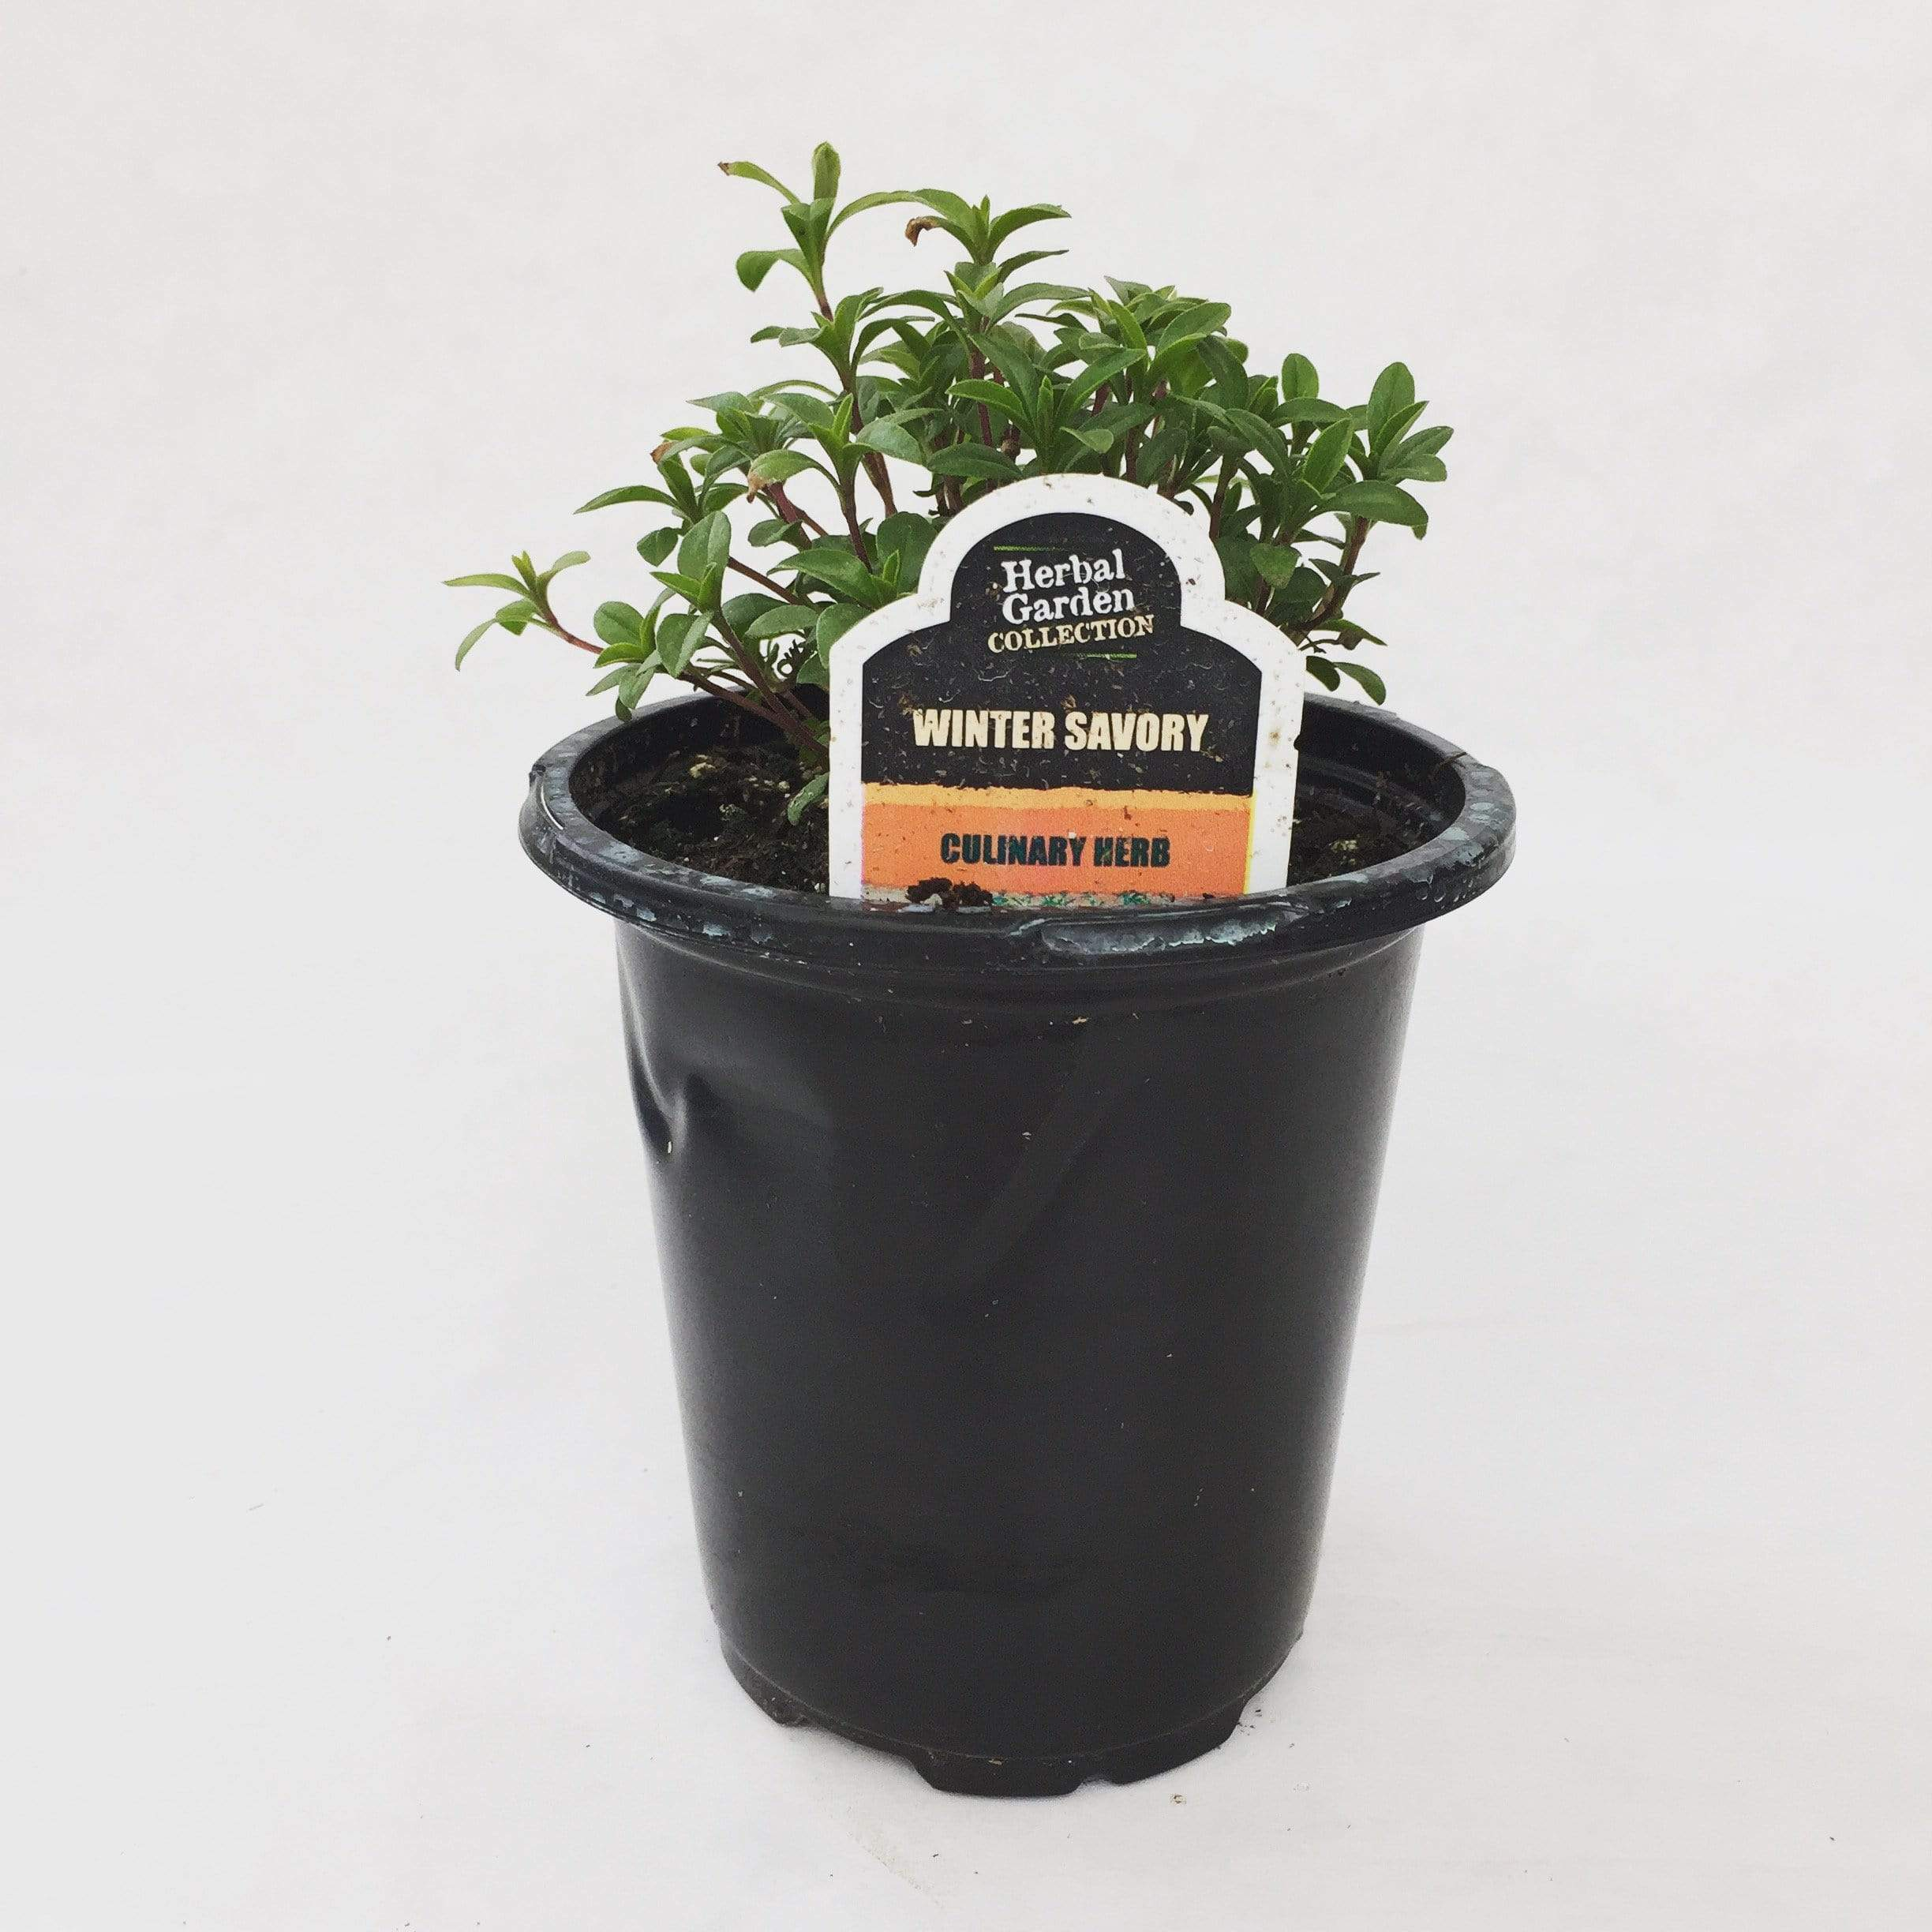 "The Plant Farm Herbs 4"" Plant Winter Savory Herb"